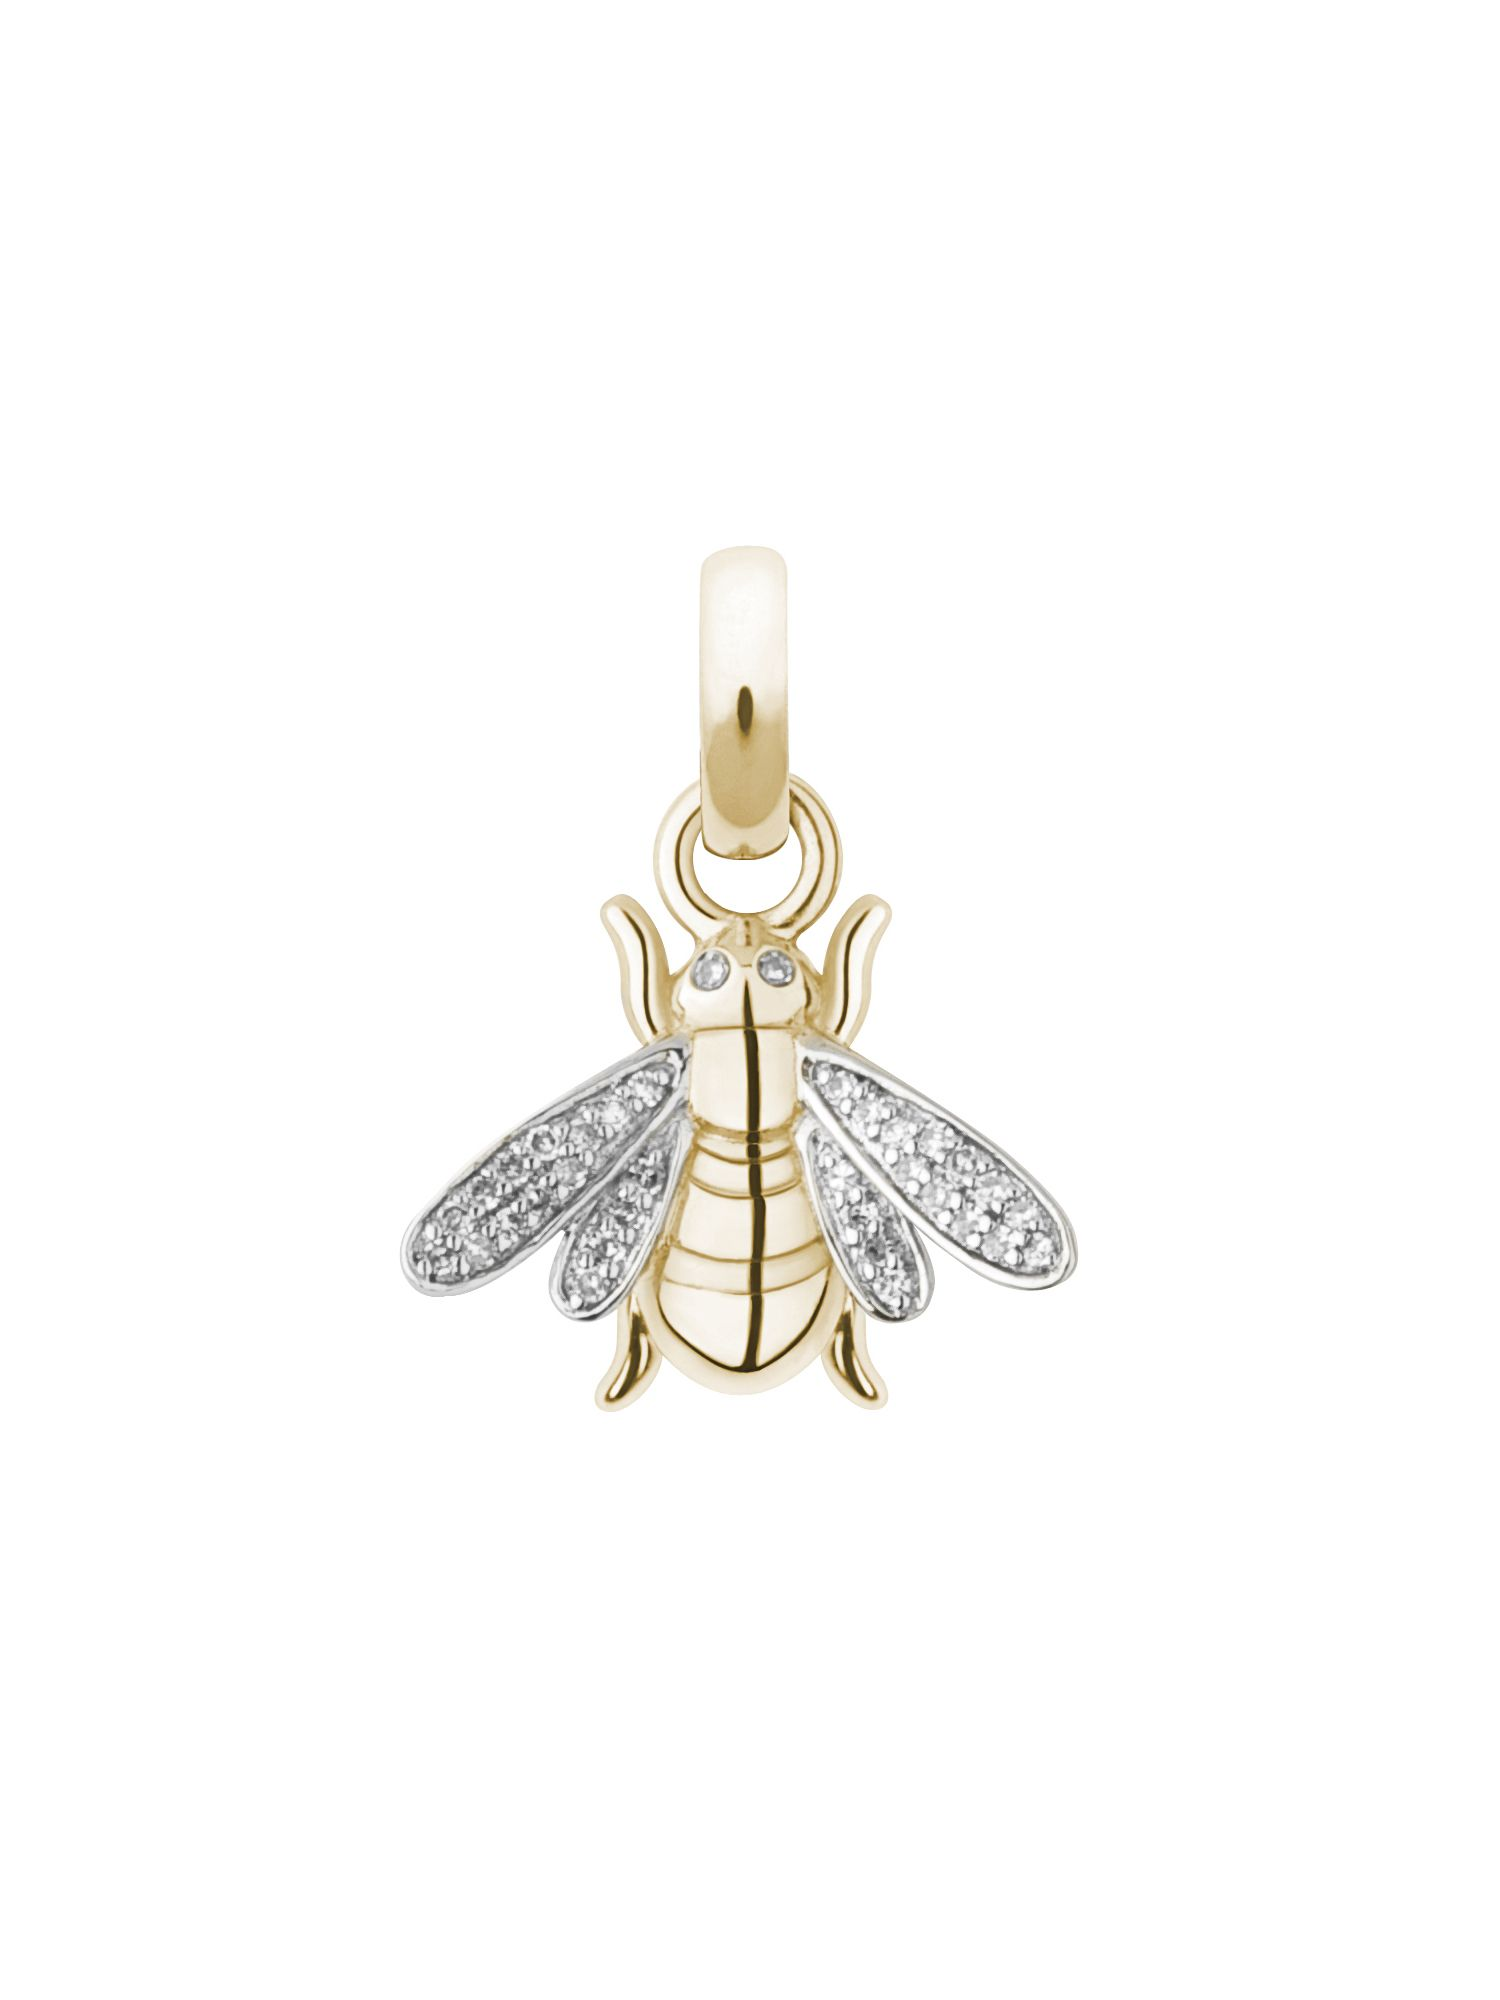 18ct gold & diamond bee charm